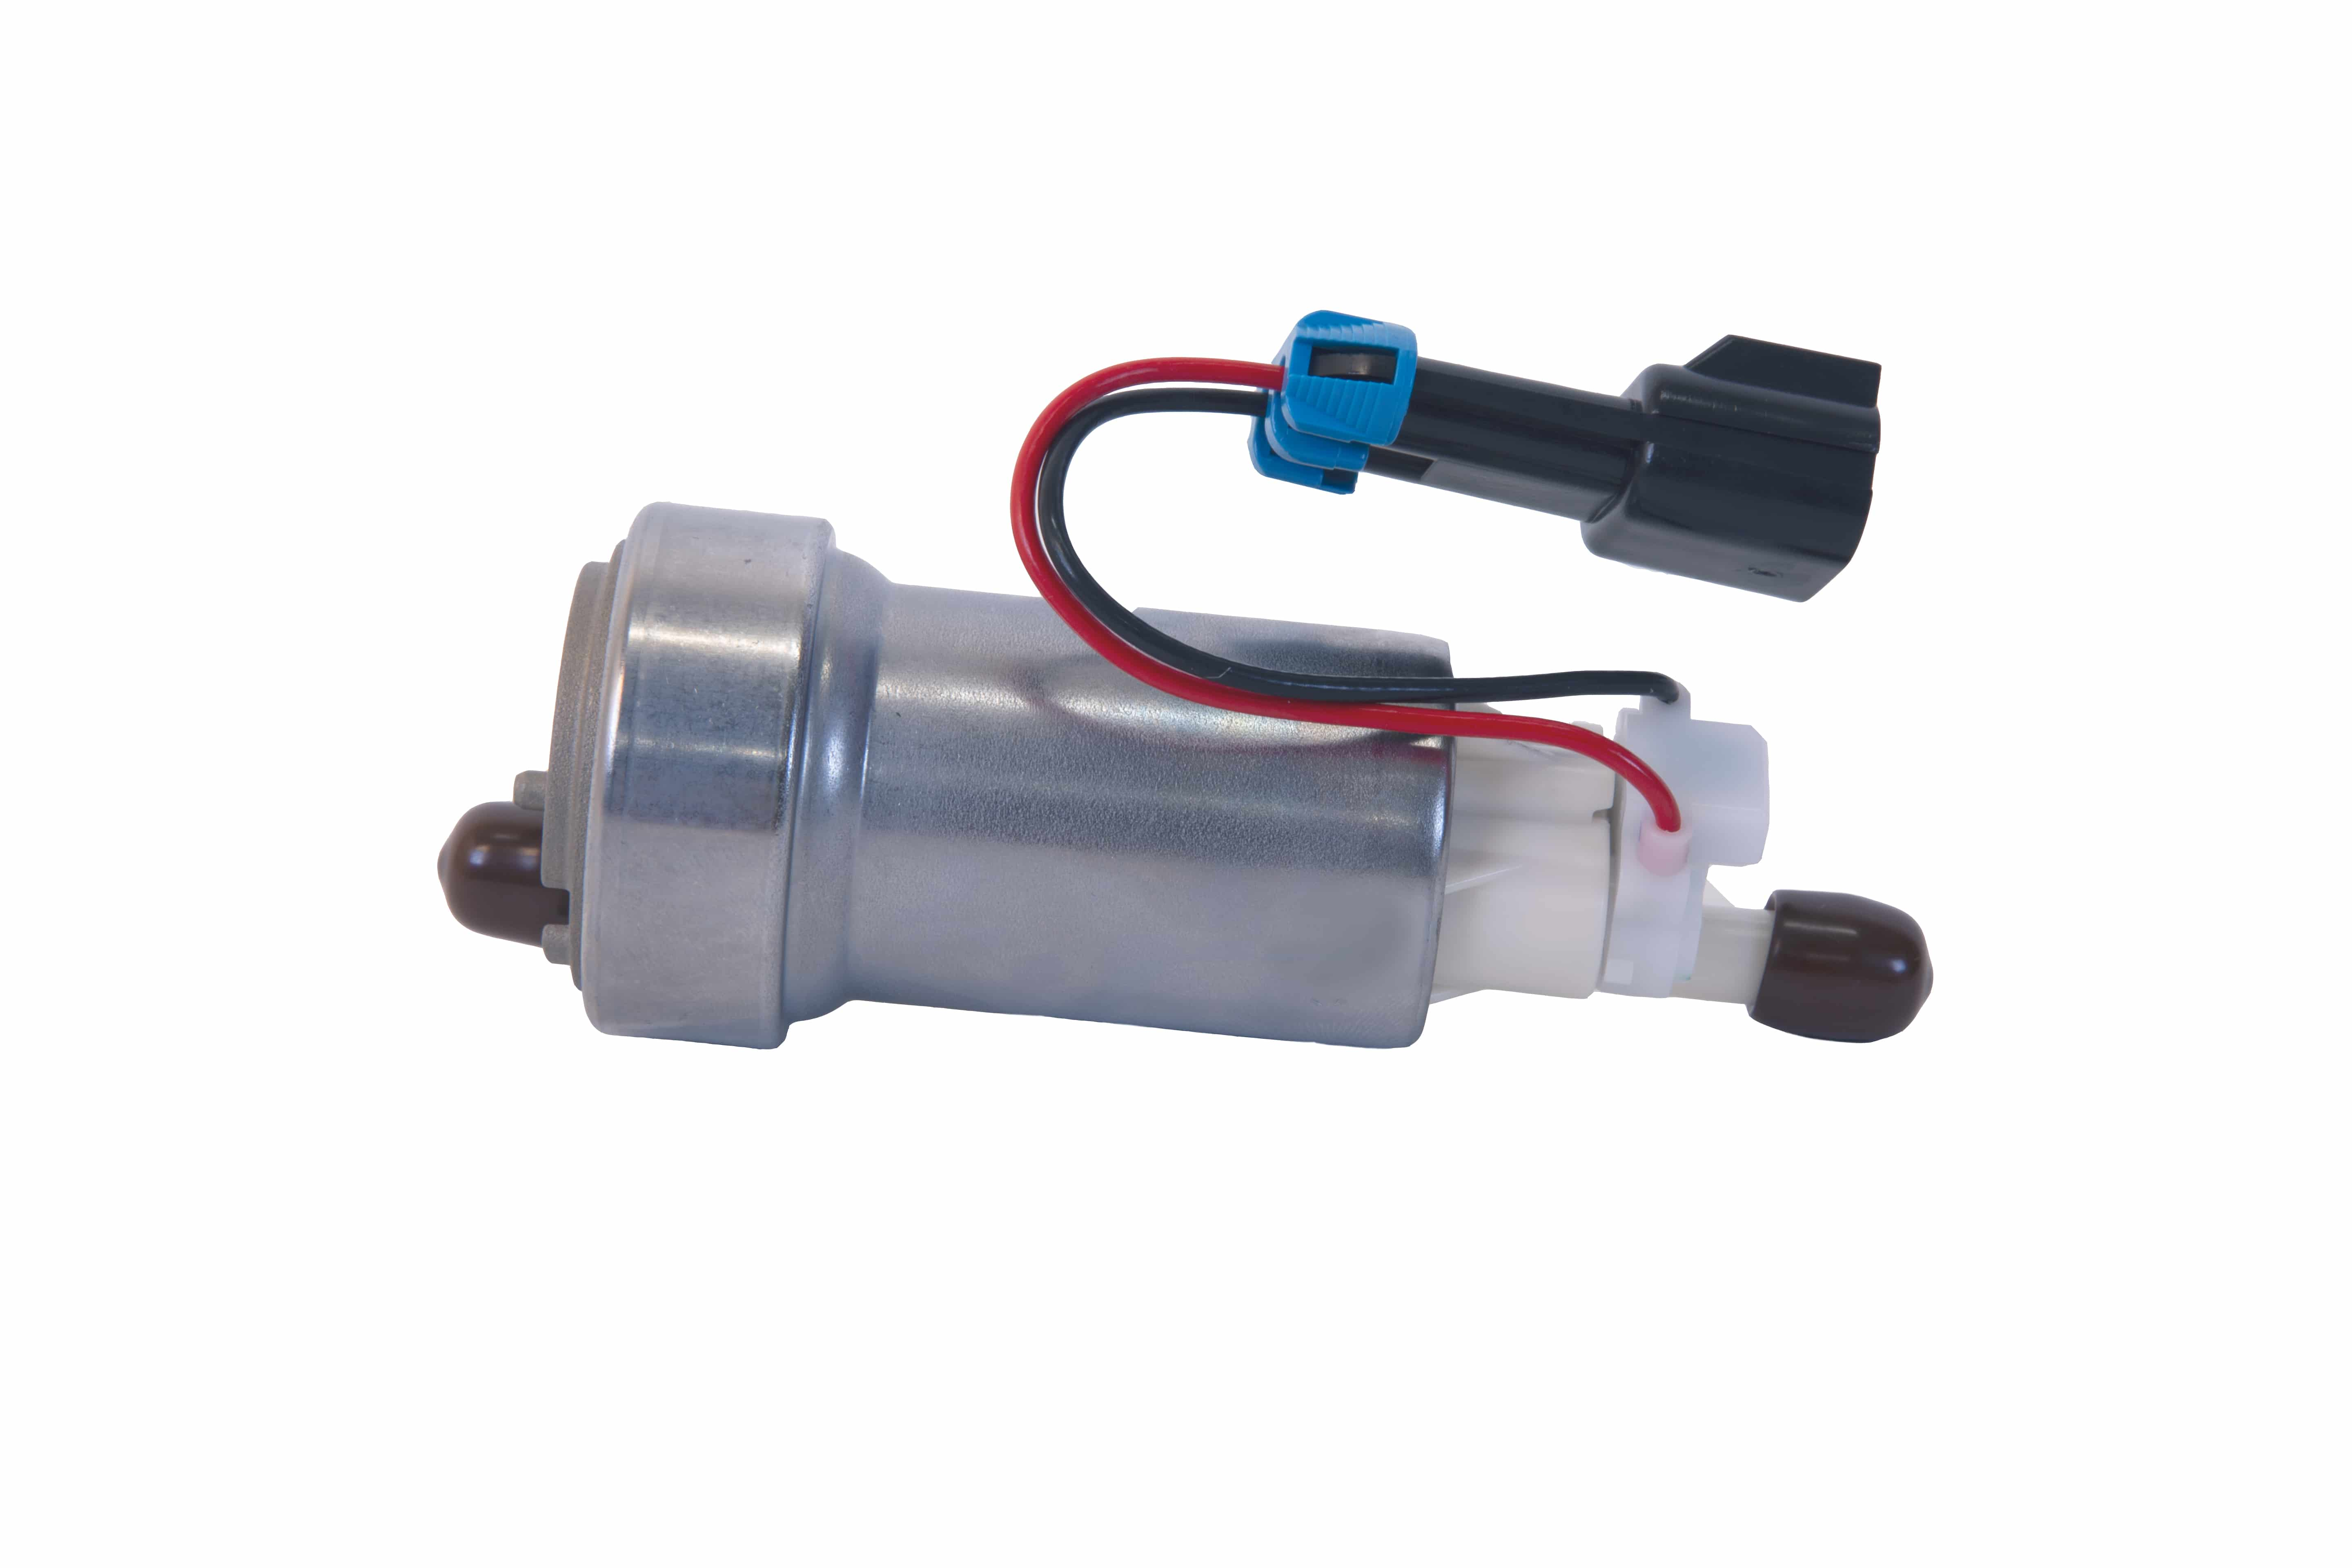 New OEM Universal Replacement In-tank Electric Fuel Pump /& Install Kit